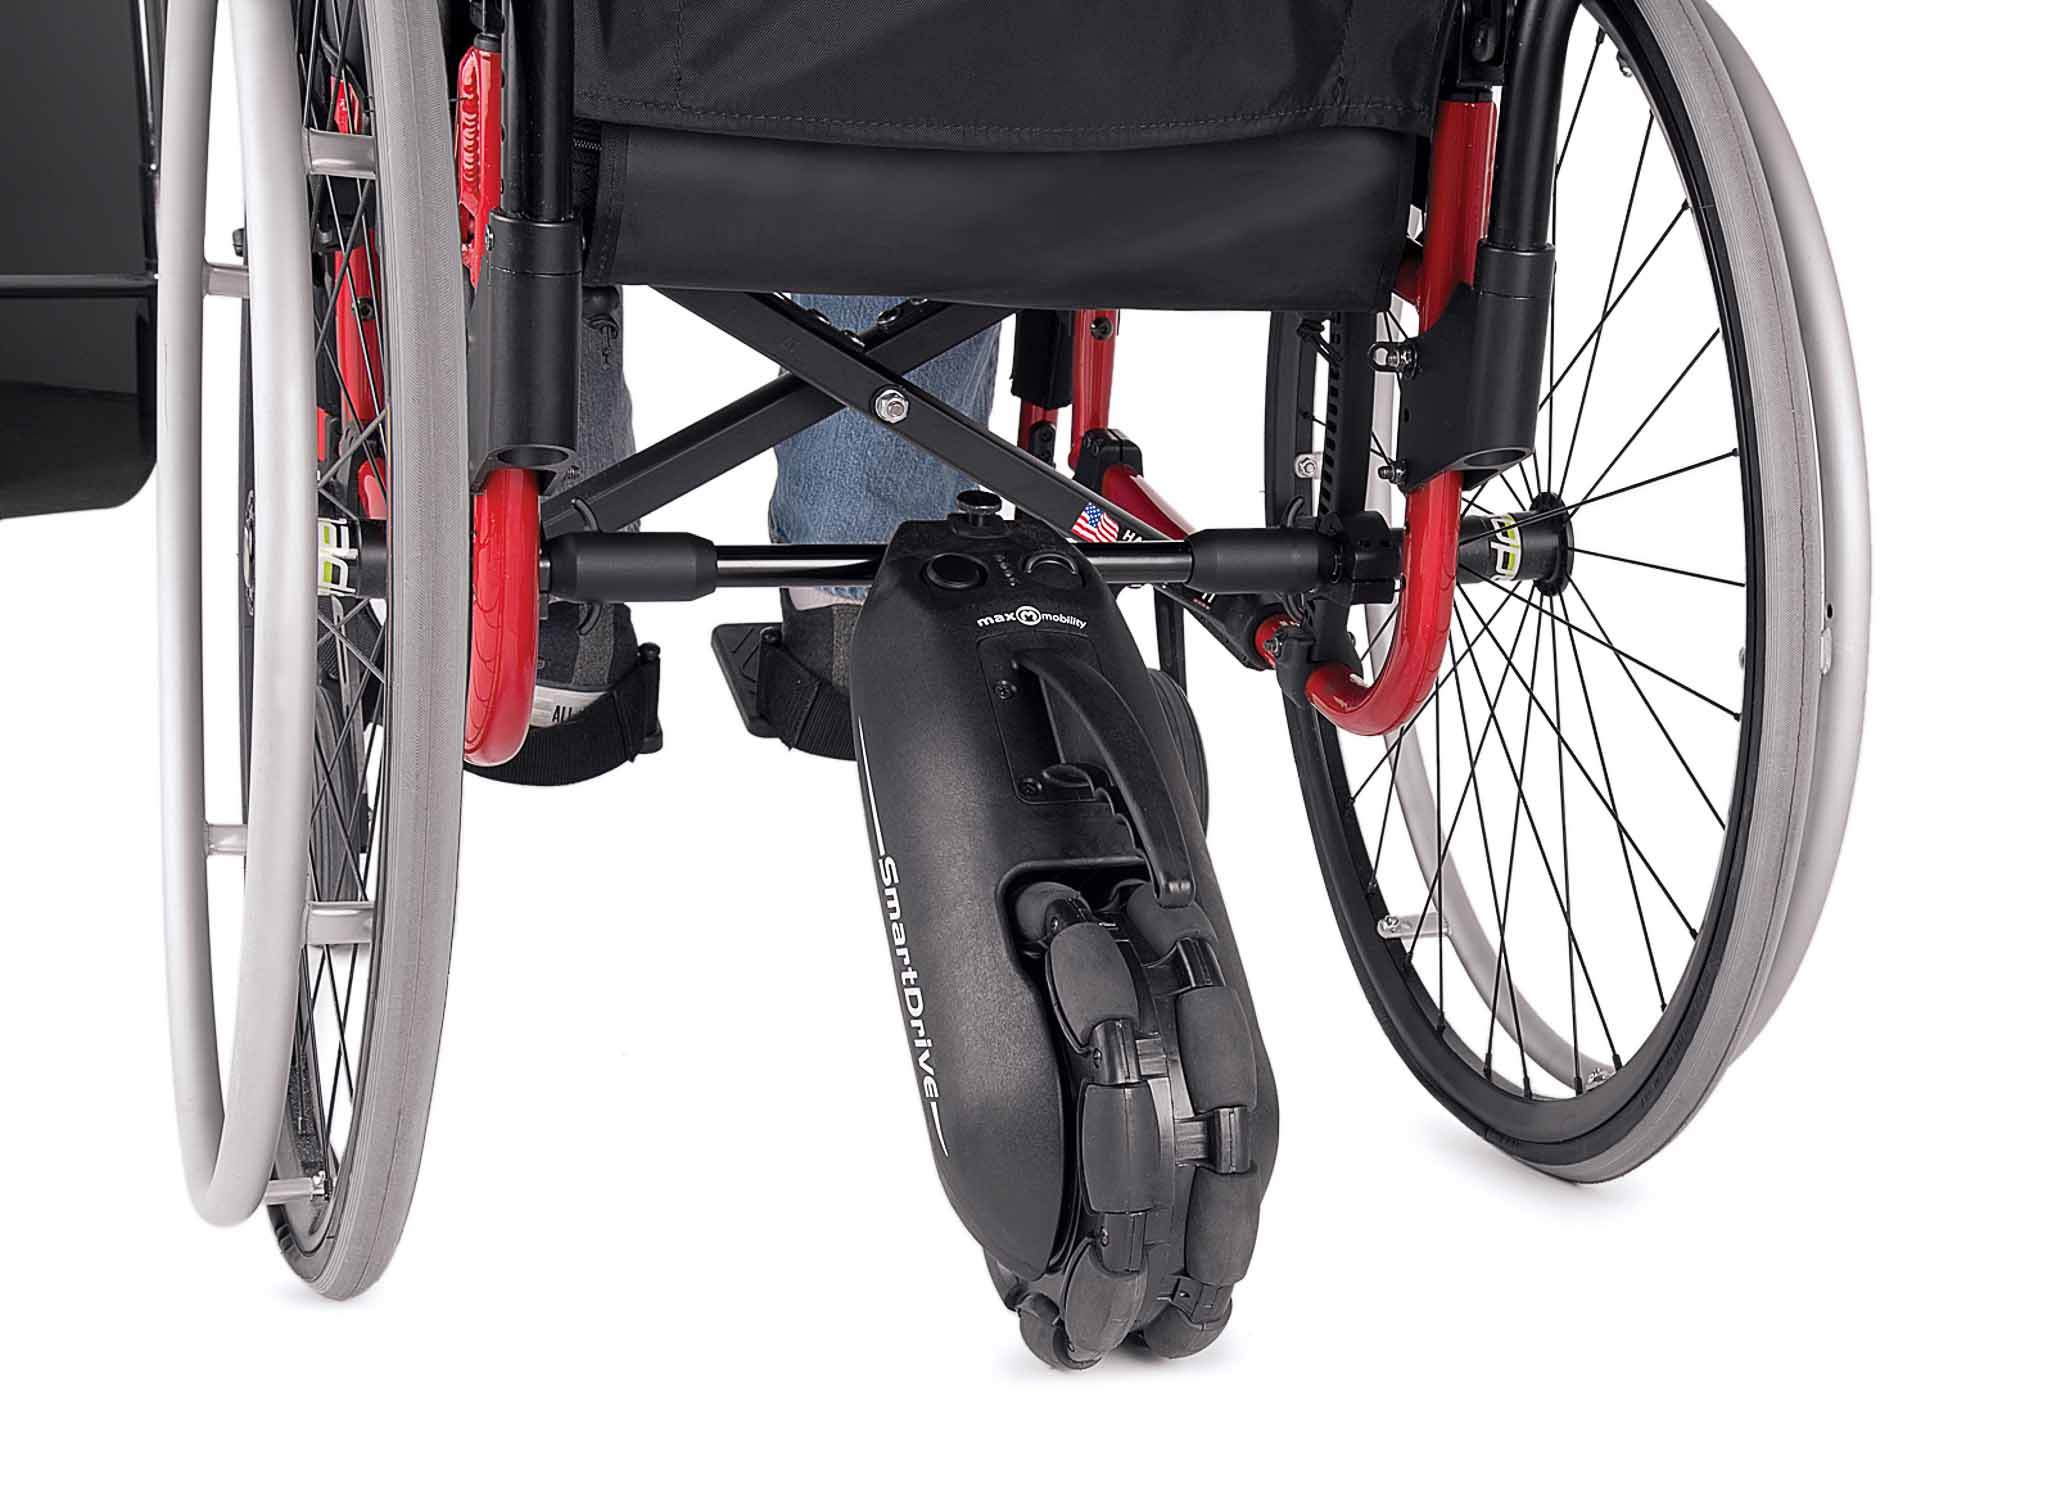 wheelchair accessories ebay chair cover hire isle of wight smartdrive mx2 pushtracker max mobility rgg 7436 jpg